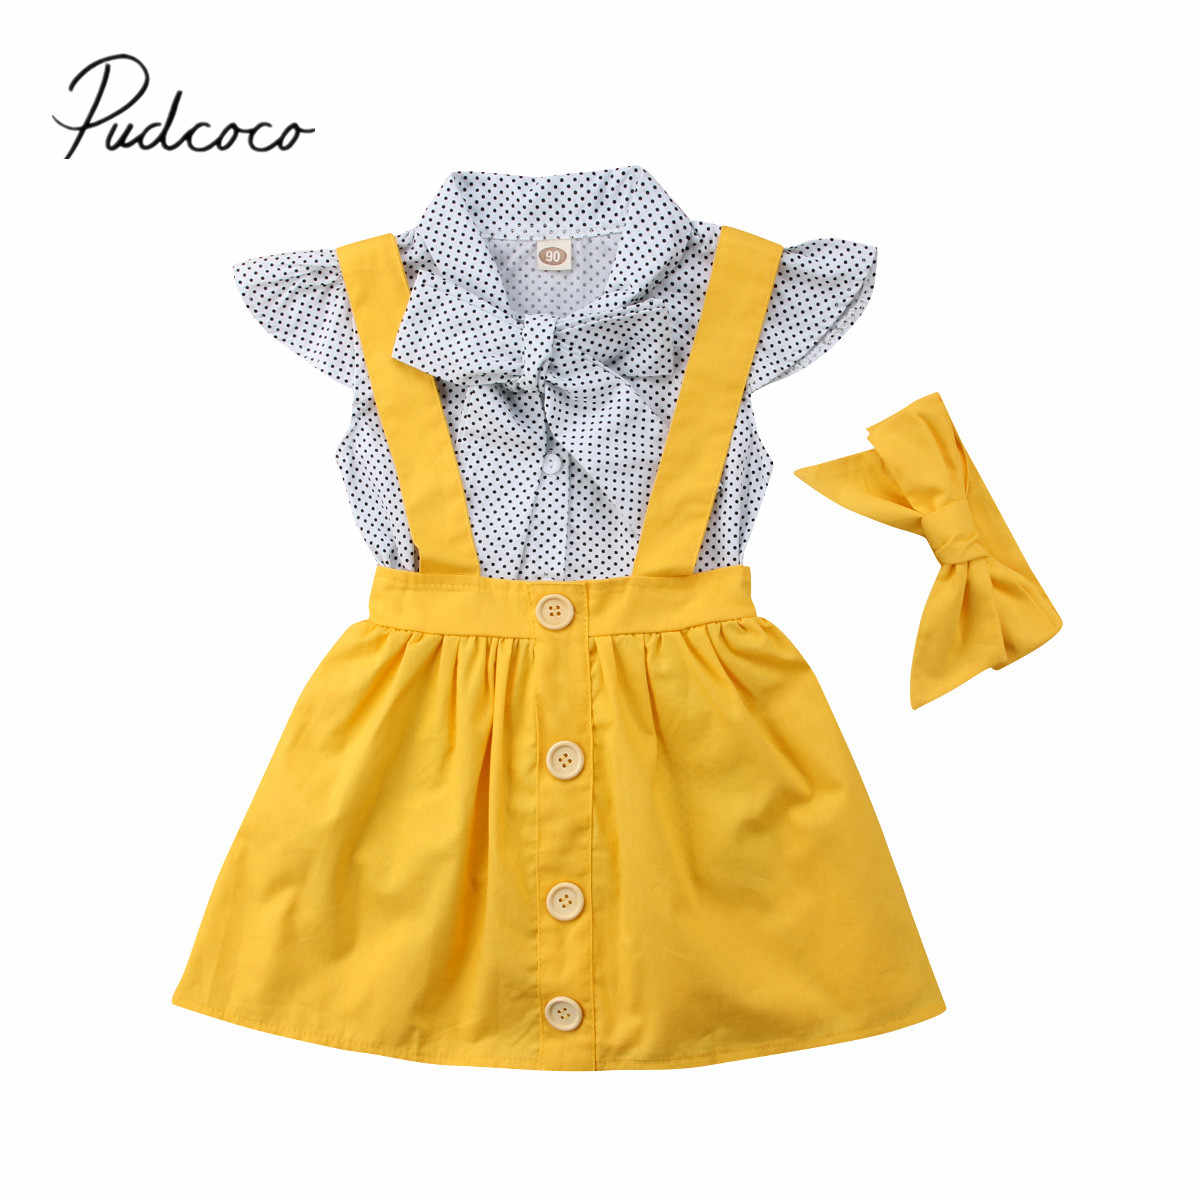 2018 Brand New Summer Fashion Lovely Toddler Baby Girls Clothes Sets 3PCS Bow Dot Print Shirts Overalls Skirt+Headband Outfits